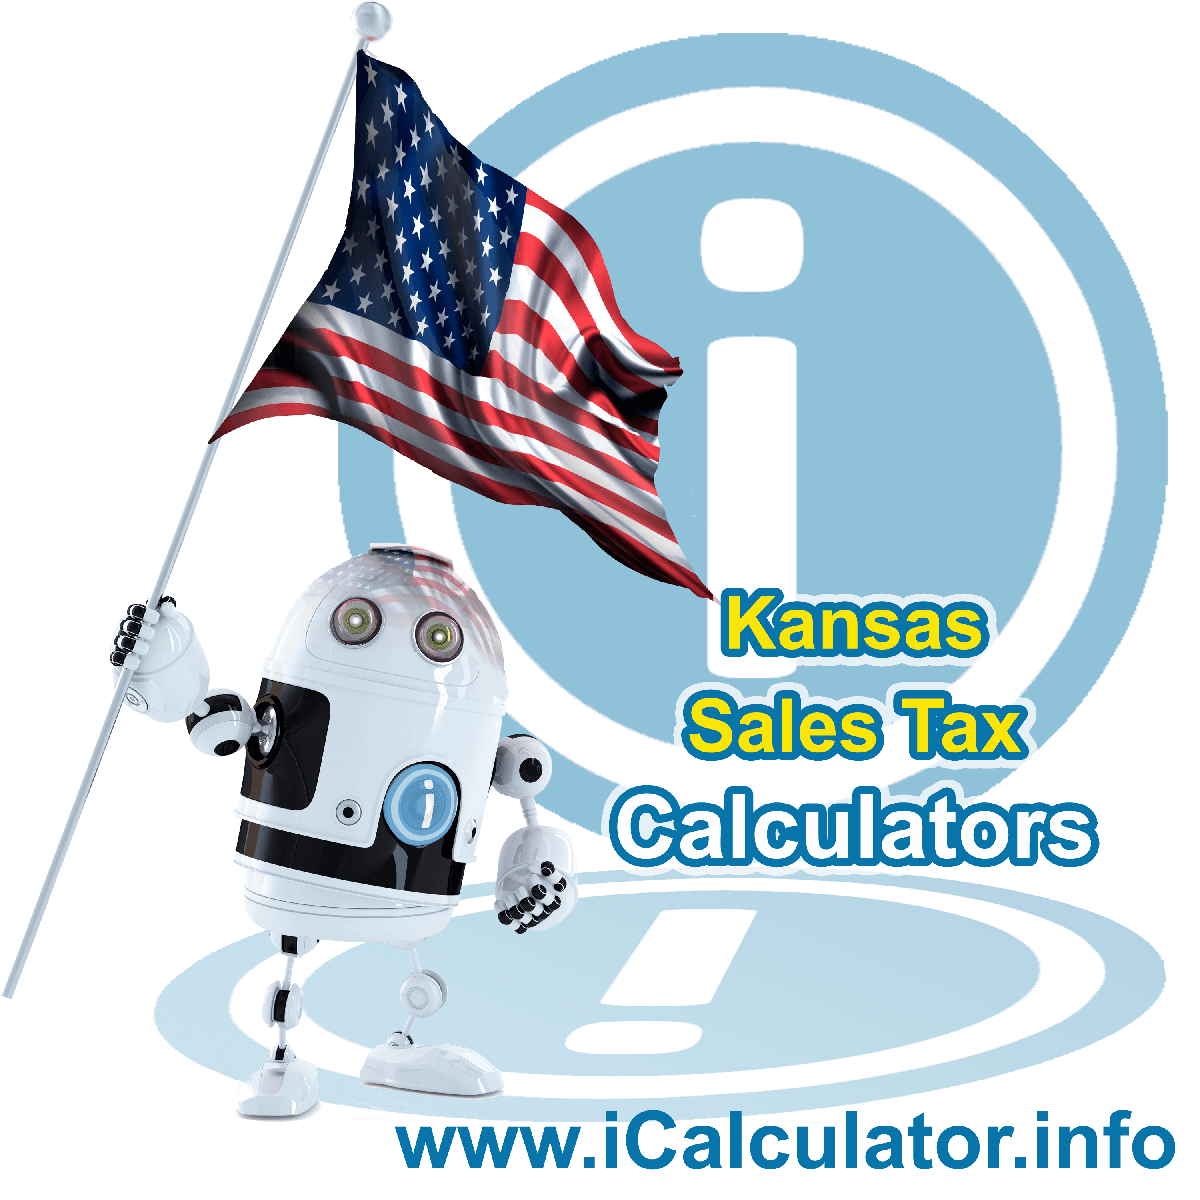 Smith Center, Kansas Sales Tax Comparison Calculator: This image illustrates a calculator robot comparing sales tax in Smith Center, Kansas manually using the Smith Center, Kansas Sales Tax Formula. You can use this information to compare Sales Tax manually or use the Smith Center, Kansas Sales Tax Comparison Calculator to calculate and compare Smith Center, Kansas sales tax online.